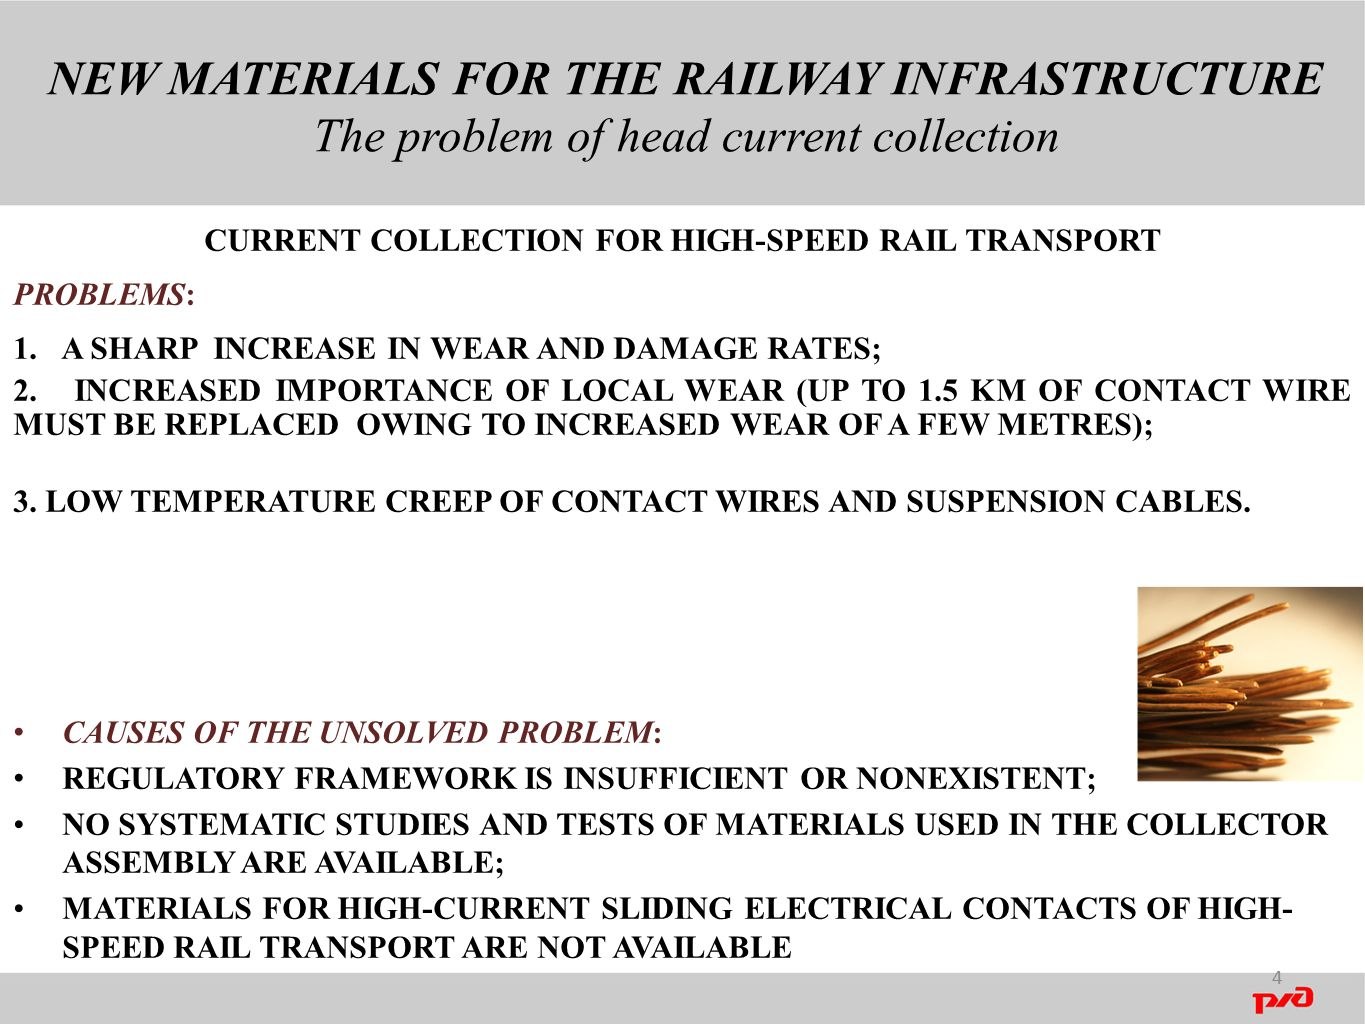 NEW MATERIALS FOR THE RAILWAY INFRASTRUCTURE The problem of head current collection CURRENT COLLECTION FOR HIGH-SPEED RAIL TRANSPORT PROBLEMS: 1.A SHARP INCREASE IN WEAR AND DAMAGE RATES; 2.